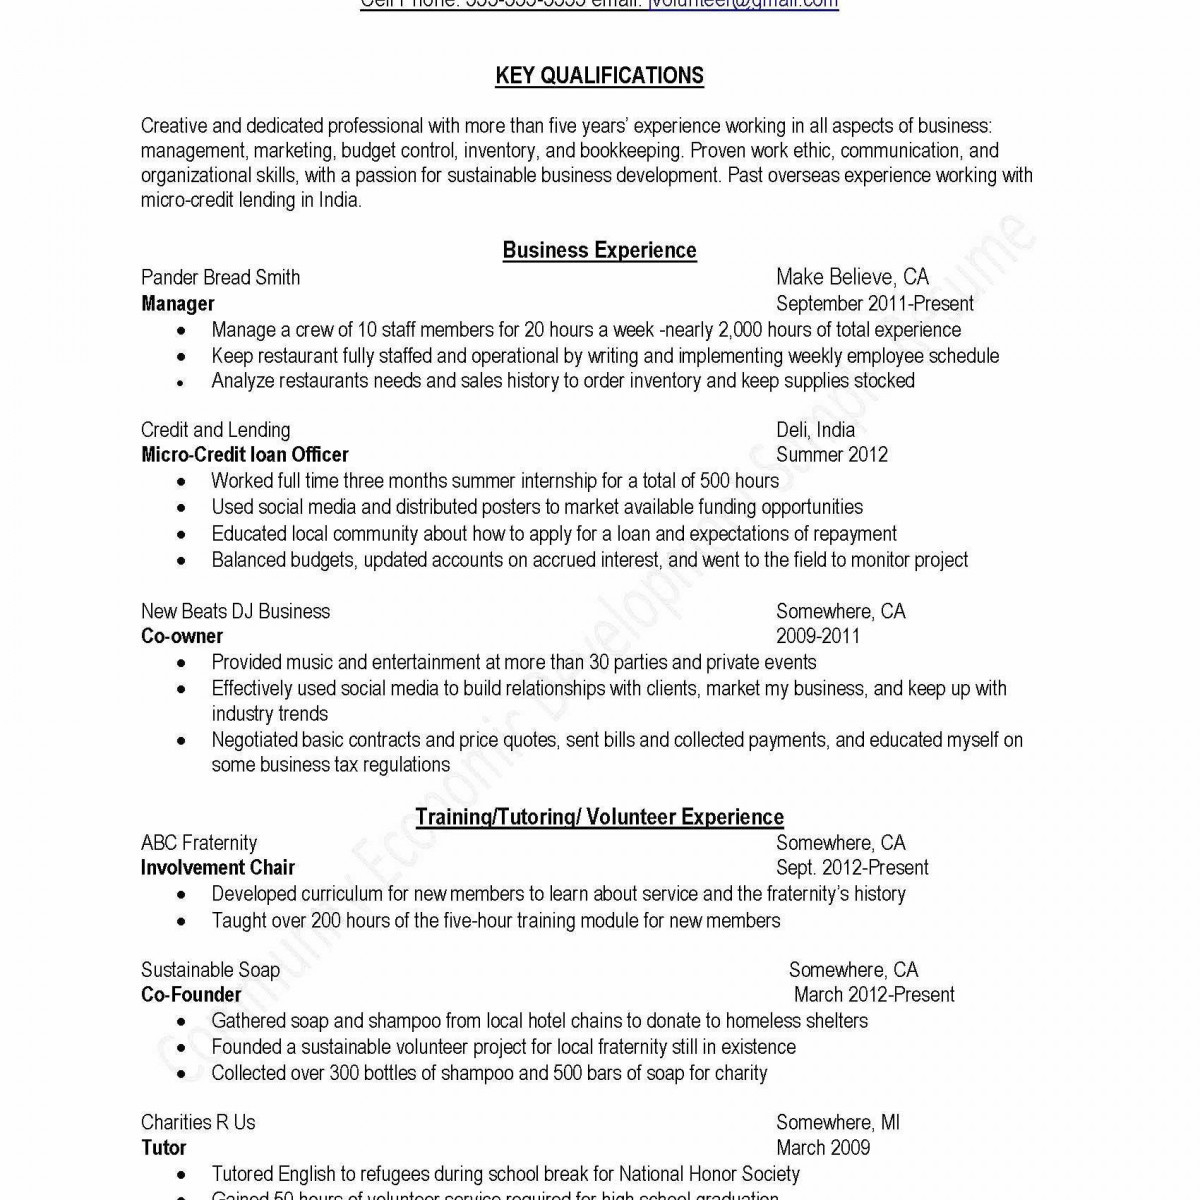 Resume Template for Undergraduate Student - 35 Beautiful Resume for College Students B3s